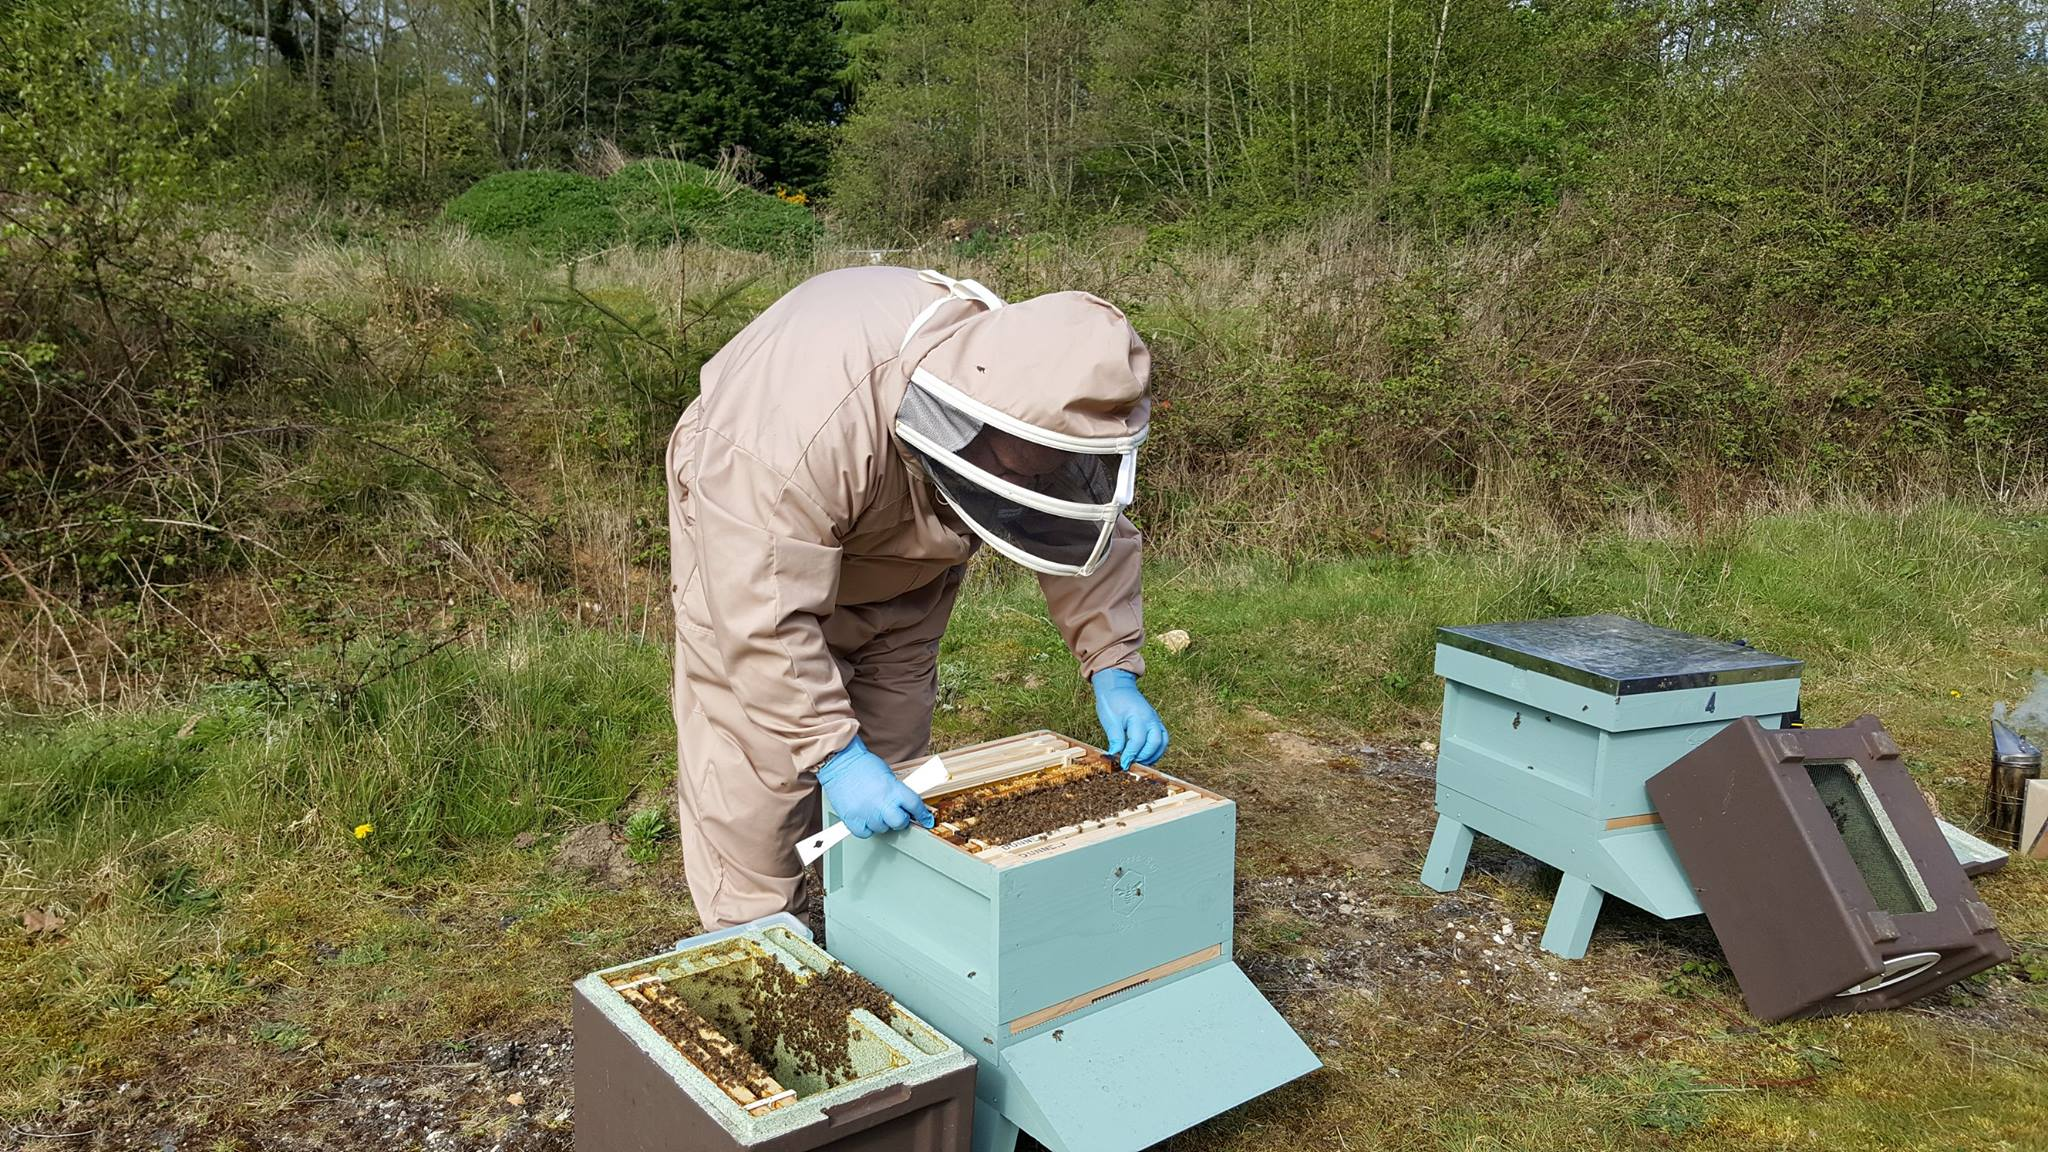 Setting up new hives